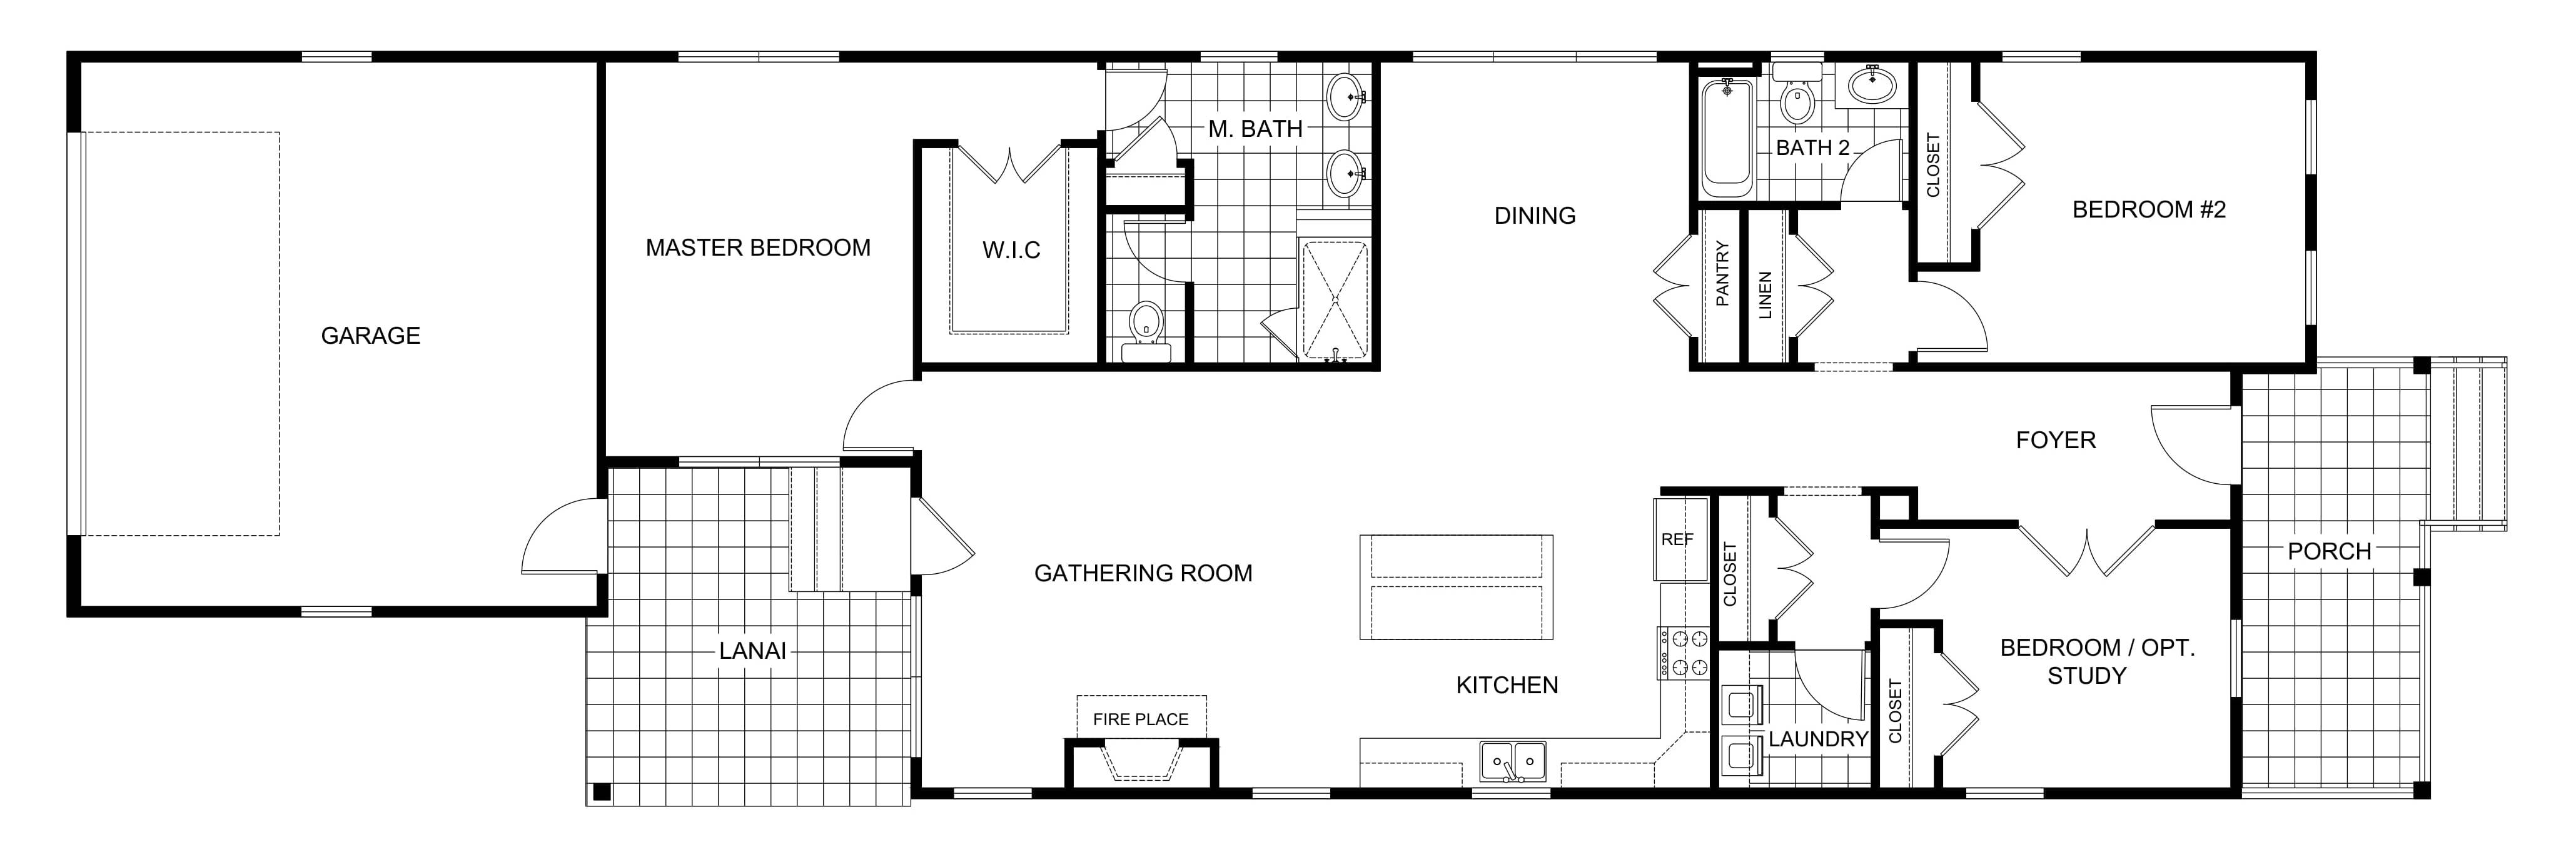 2D Floor Plan Drawing Services